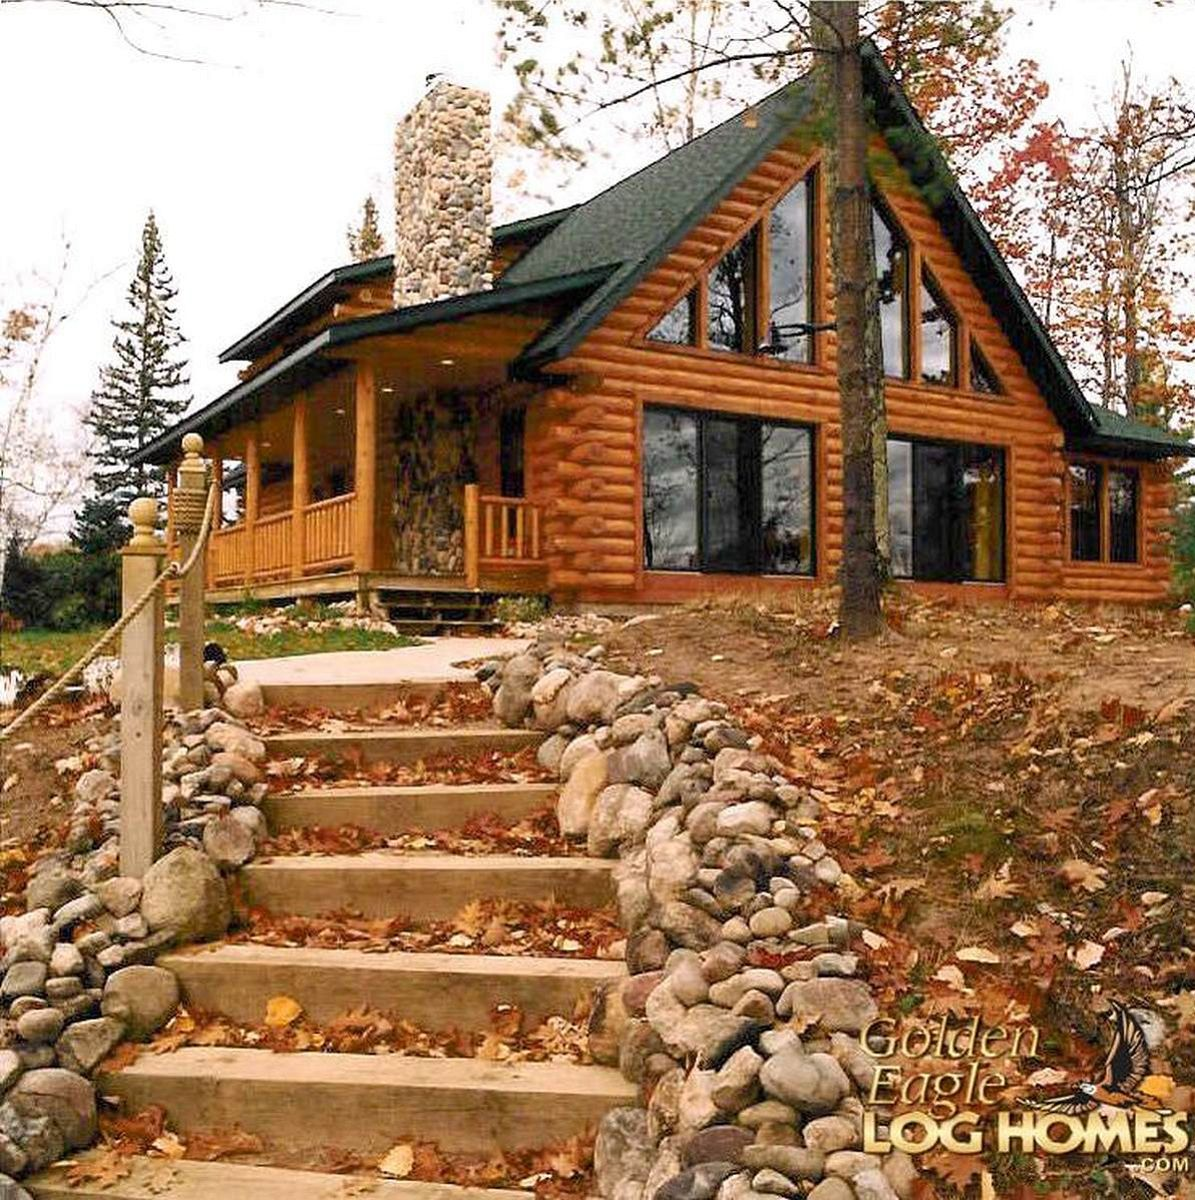 Log home by golden eagle log homes golden eagle log logs for Cabin style homes